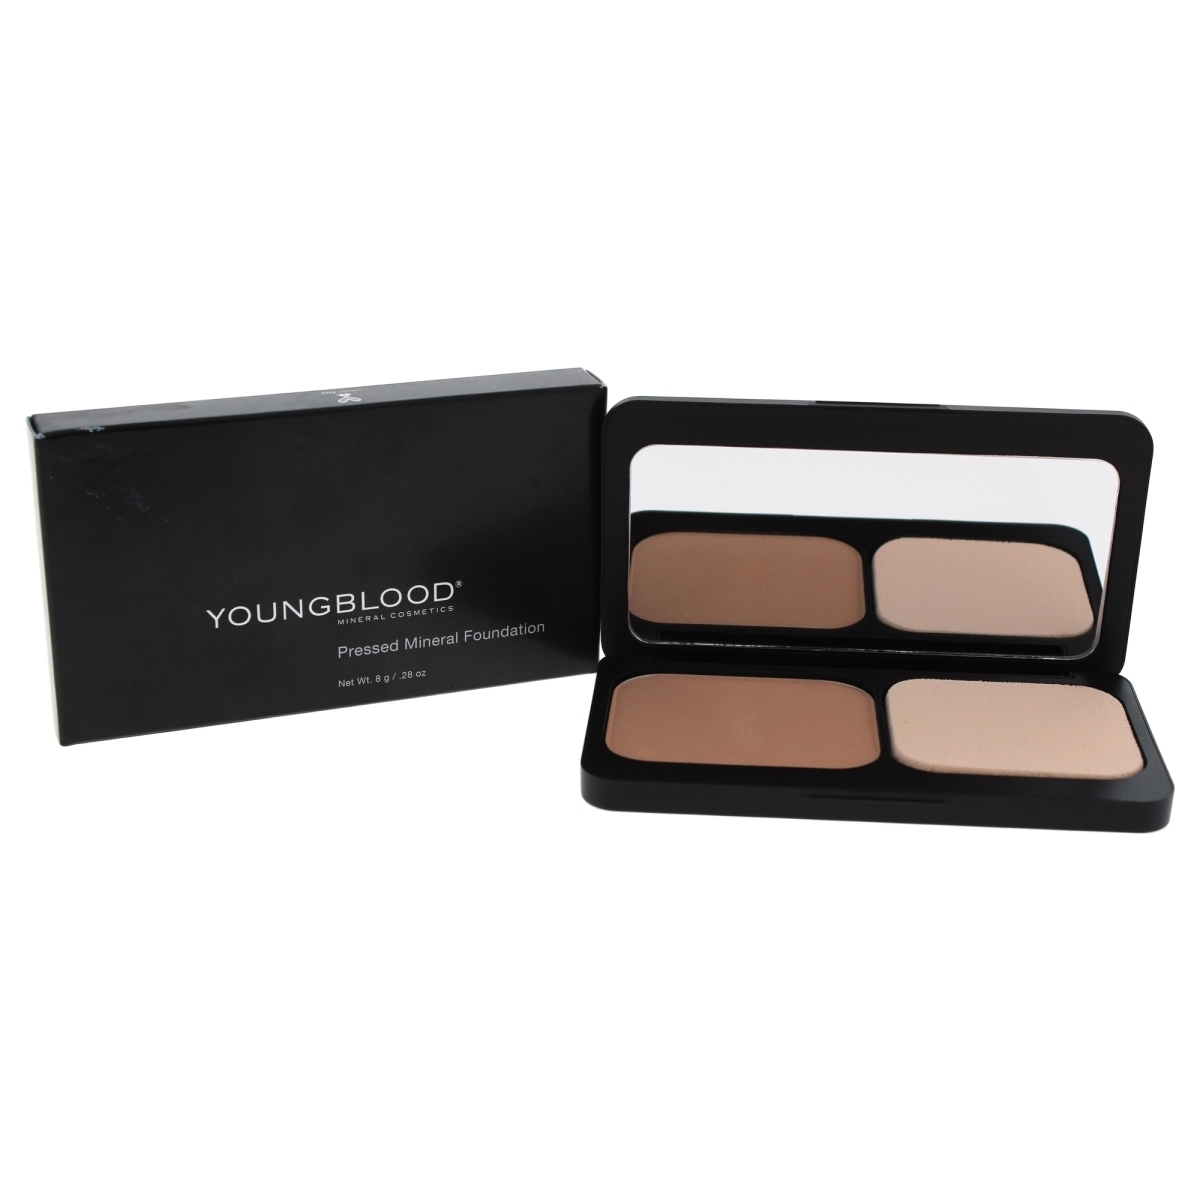 Youngblood W-C-11950 0.28 oz Pressed Mineral Foundation for Women Rose Beige 02 beige rose